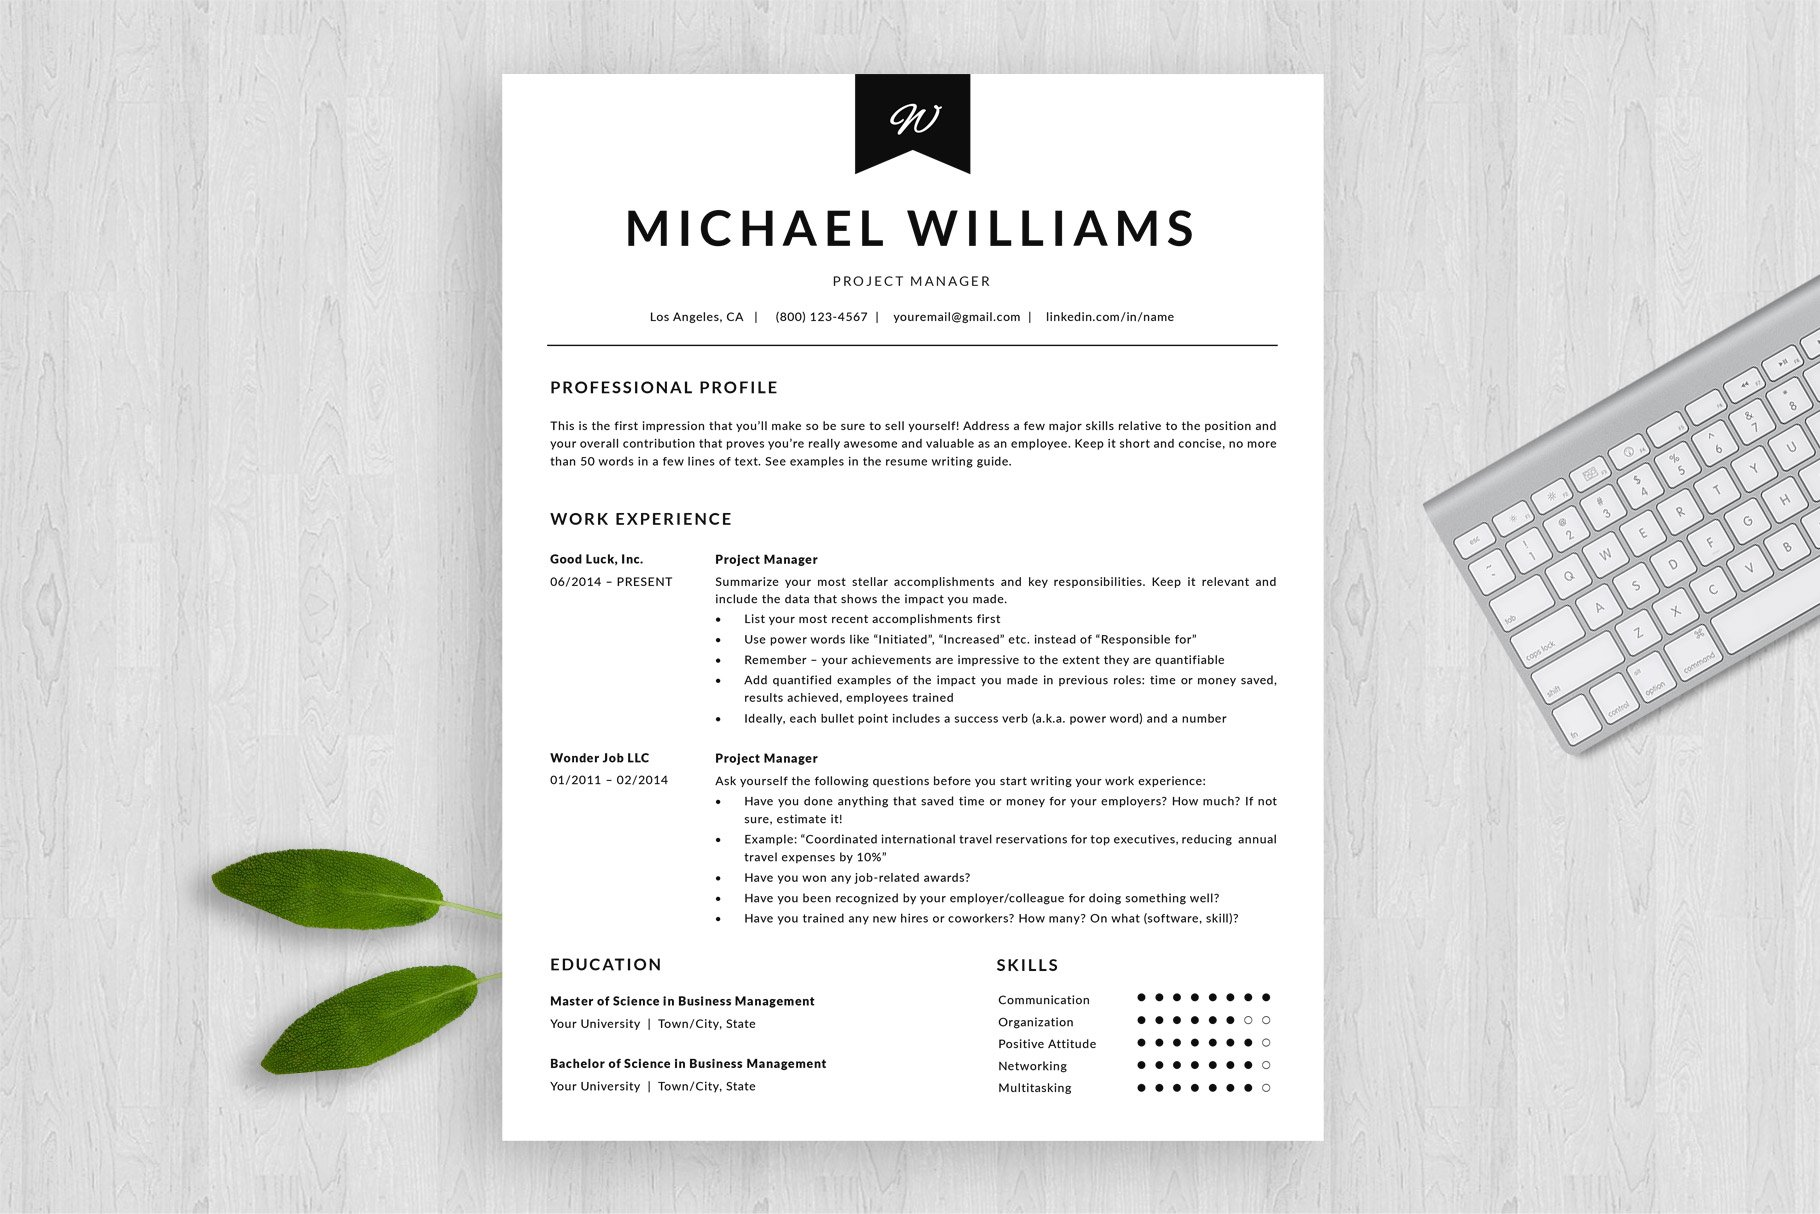 modern resume template and cover letter template  u0026quot michael u0026quot    bonus